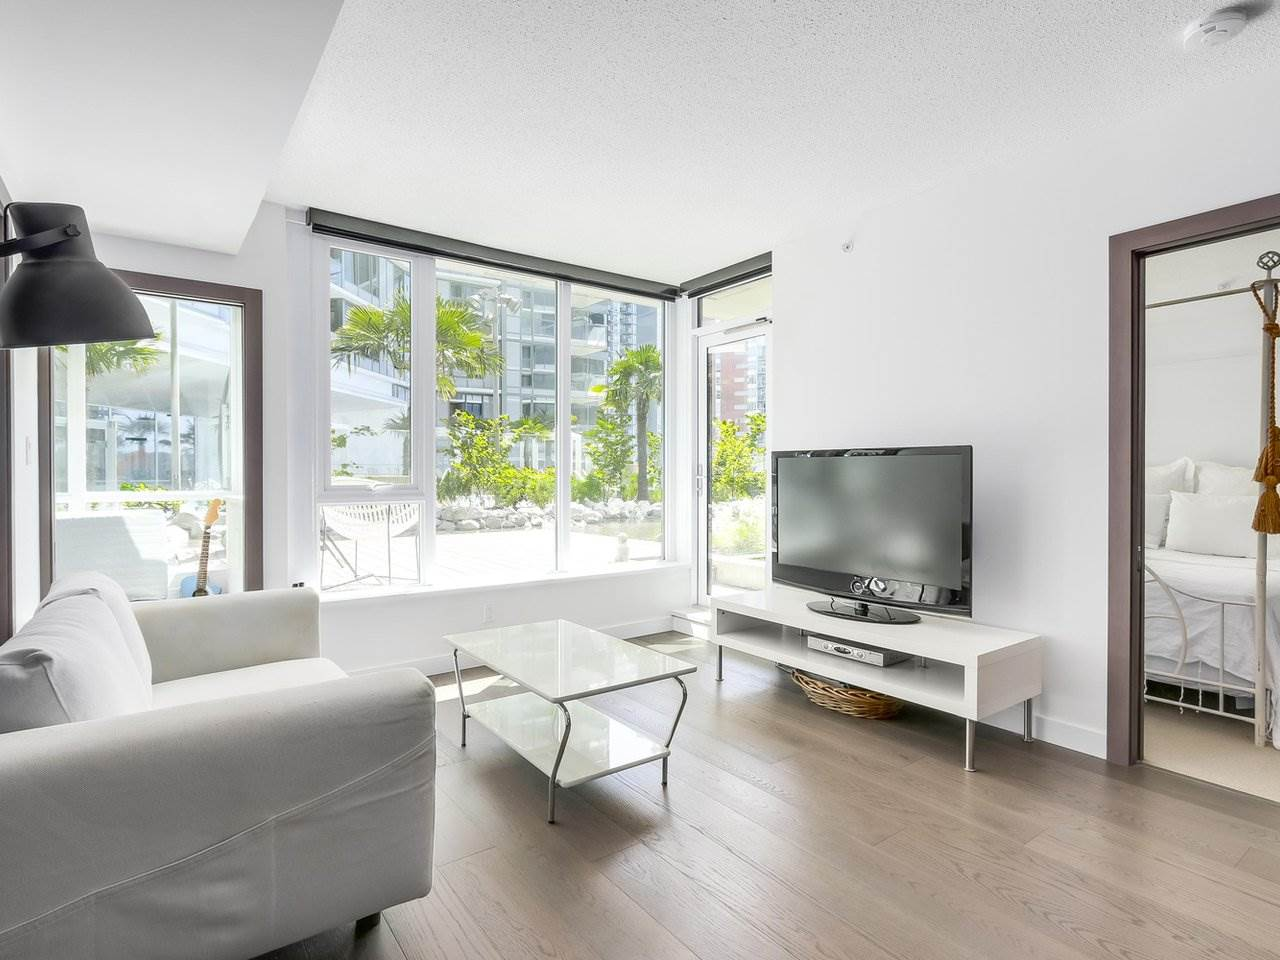 Condo Apartment at 303 68 SMITHE STREET, Unit 303, Vancouver West, British Columbia. Image 7